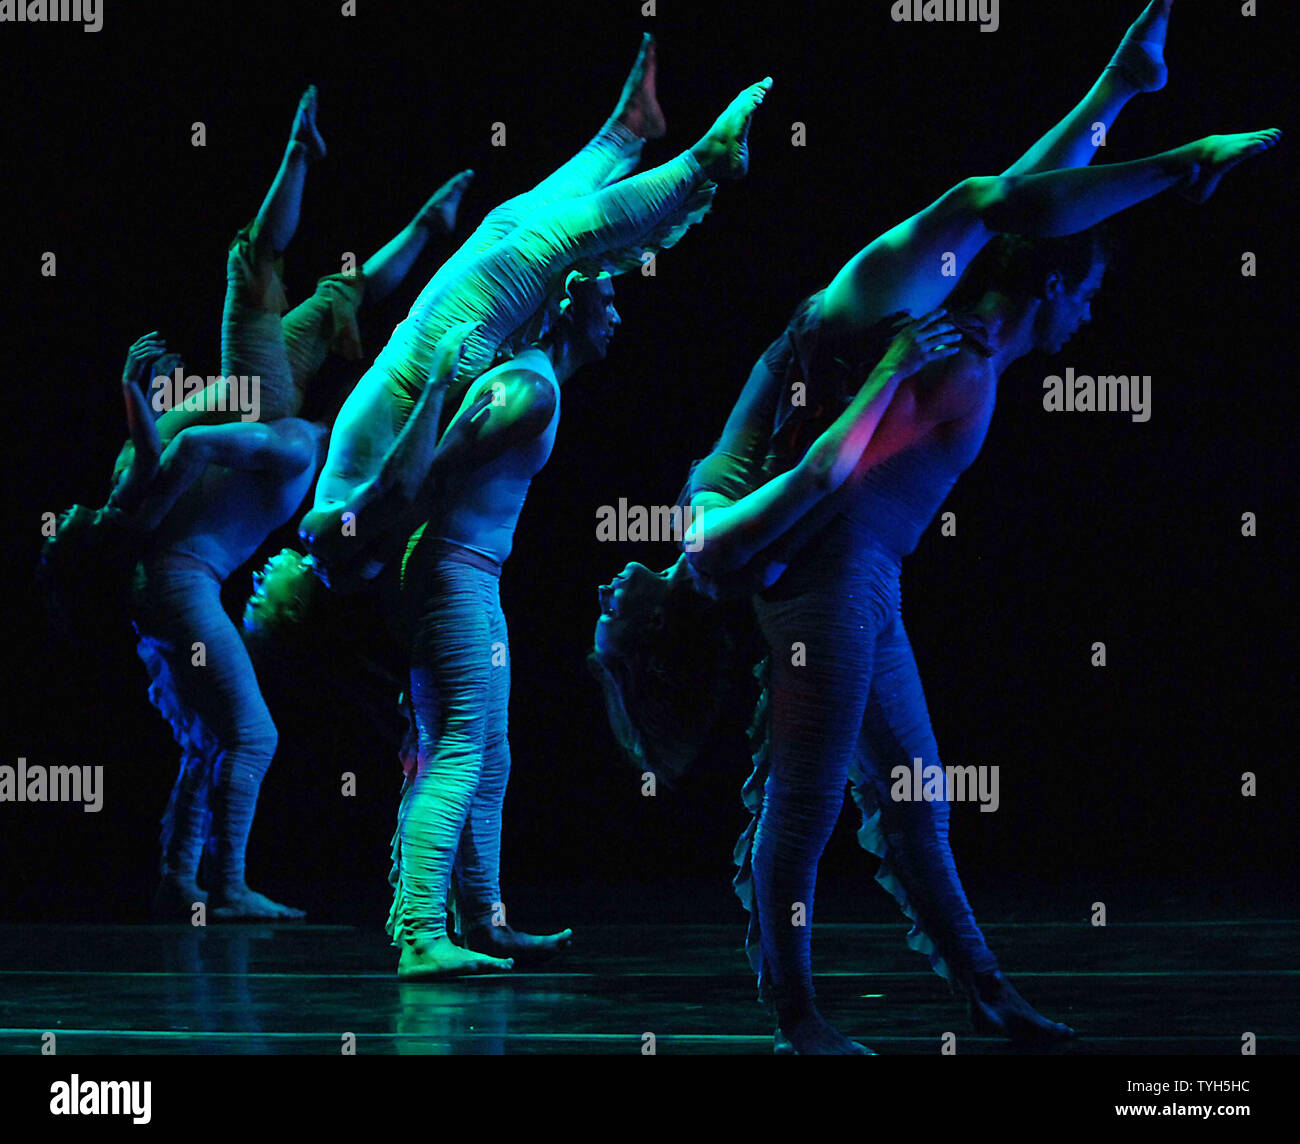 """Members of the Pilobolus dance company rehearse their new ballet """"Aquatica (2005) """" which will debut on July 11, 2005 at New York's Joyce theatre.  (UPI Photo/Ezio Petersen) Stock Photo"""